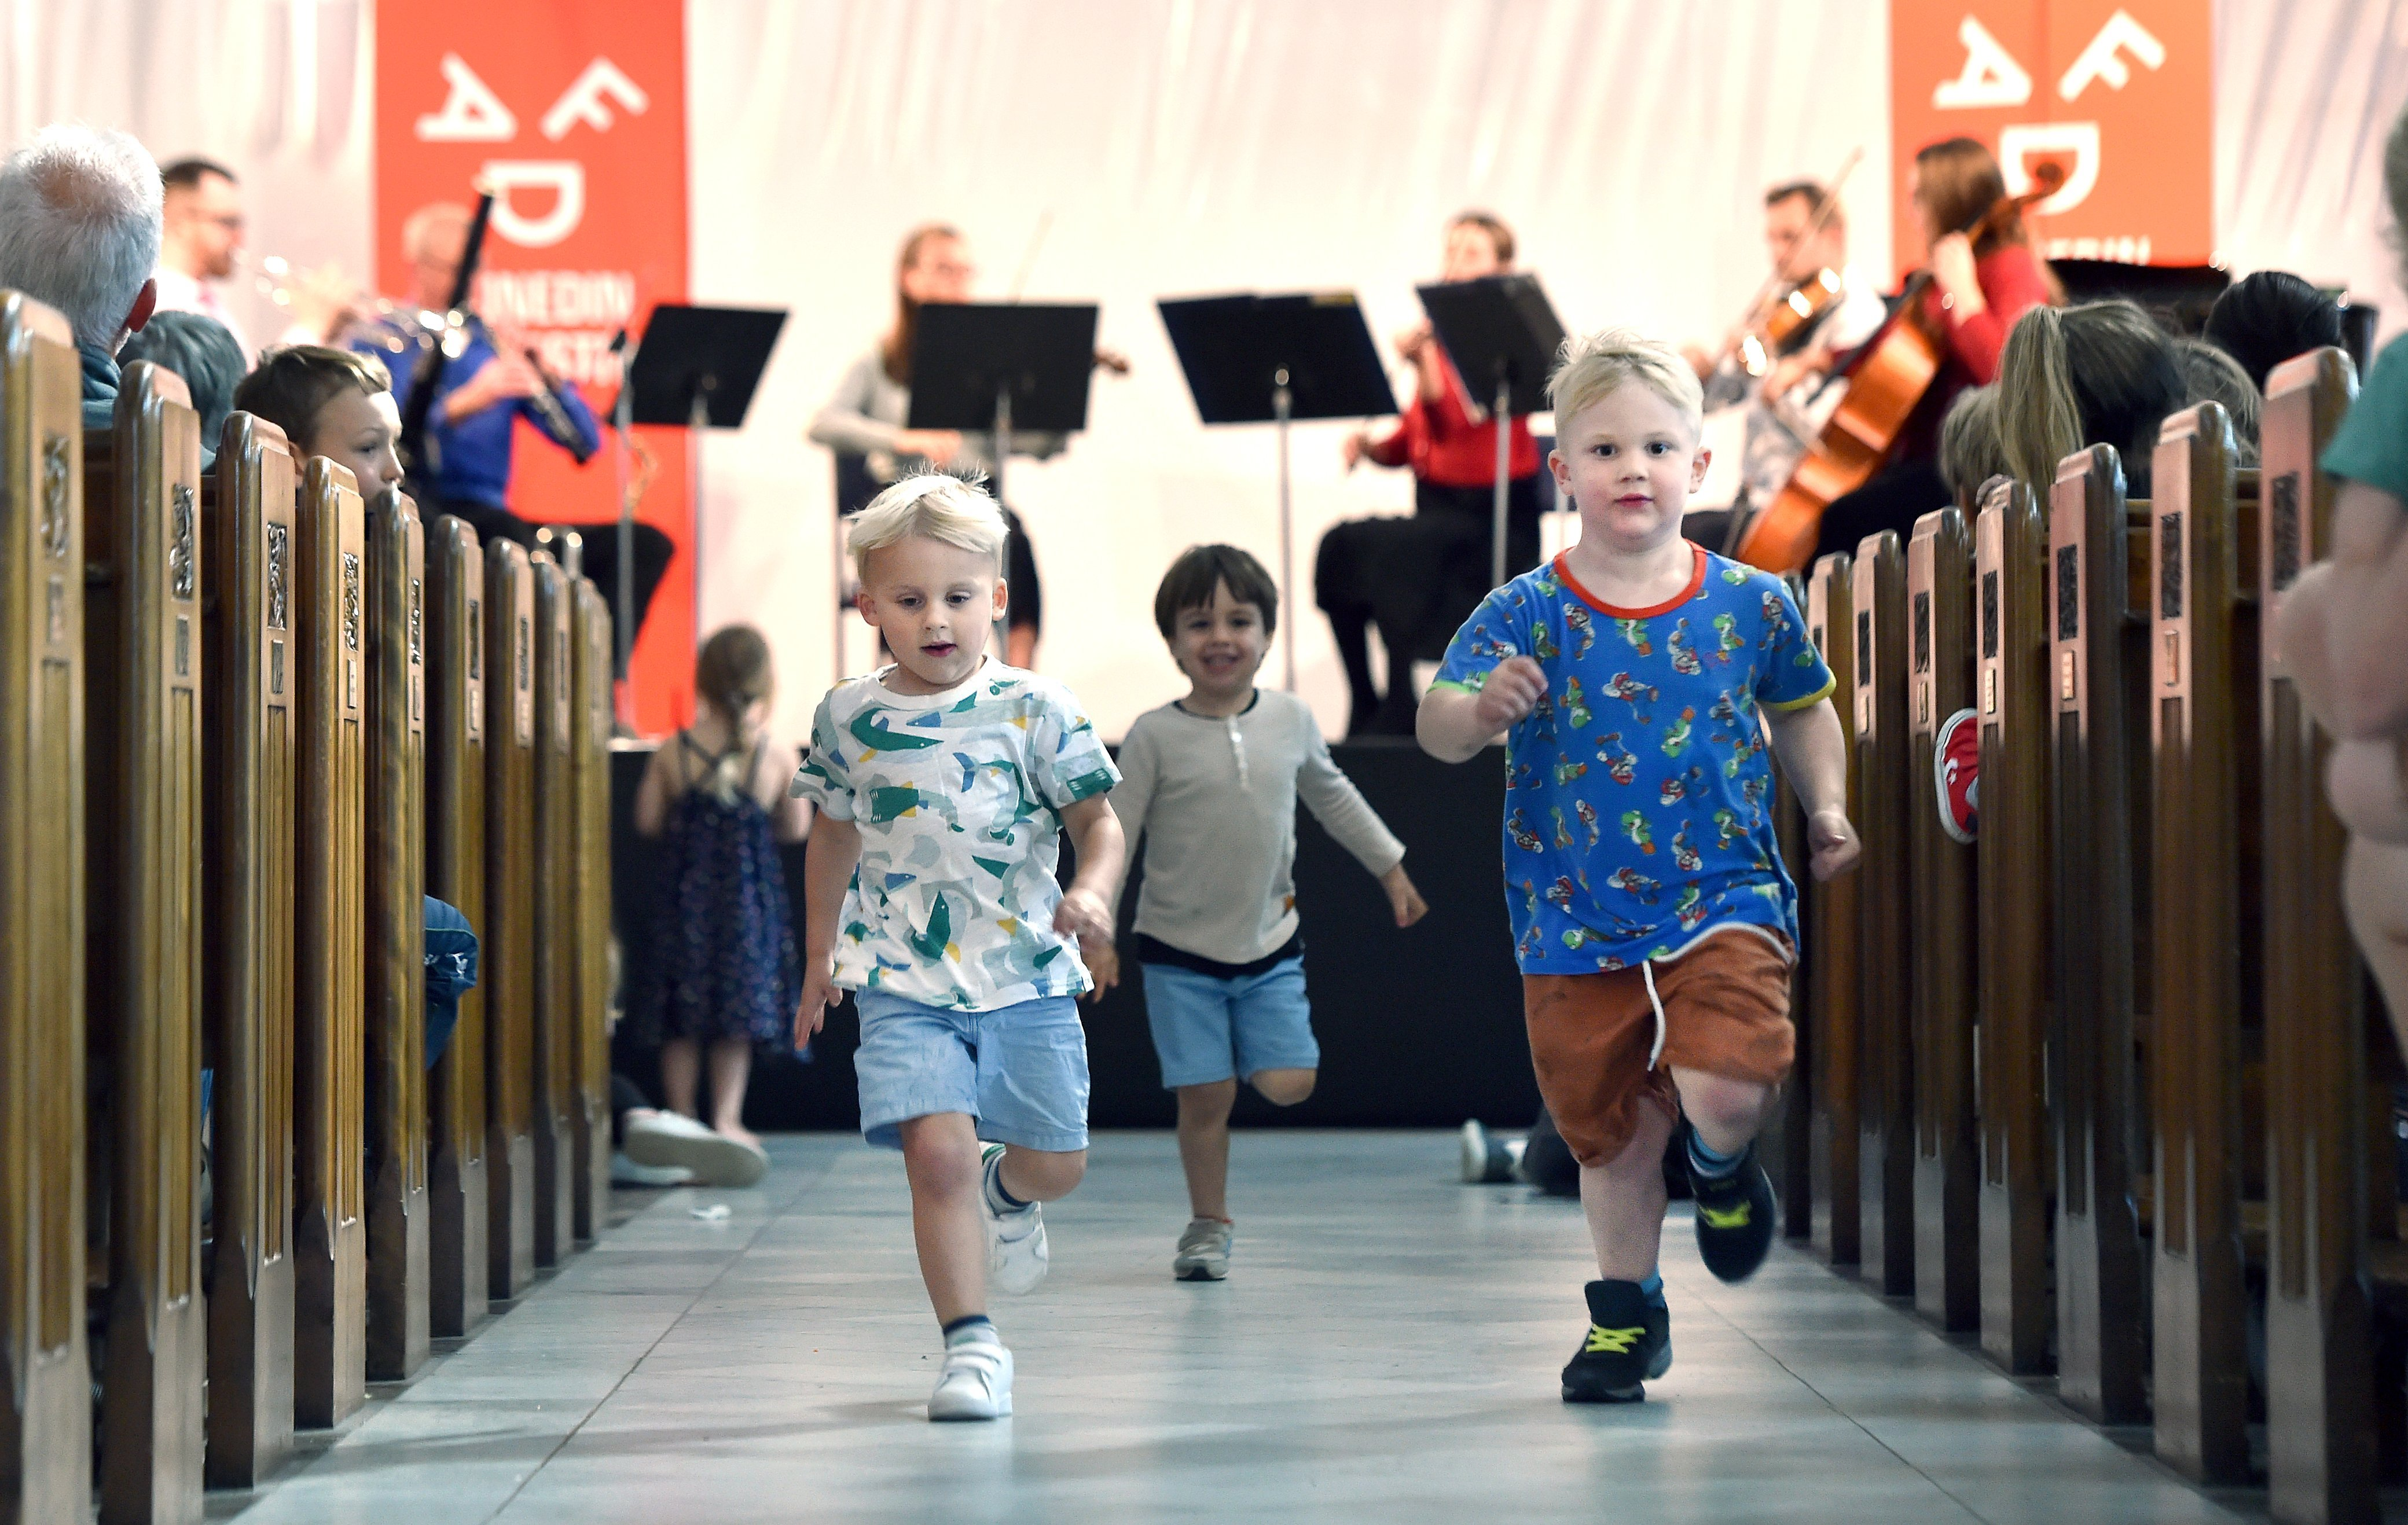 Big fans of Beethoven and running around churches (from left) Jimmy Burke (3), Oscar Muir (3) and Matteo Guidi (4) all of Dunedin, run down the central aisle at at St Paul's Cathedral. PHOTO: PETER MCINTOSH